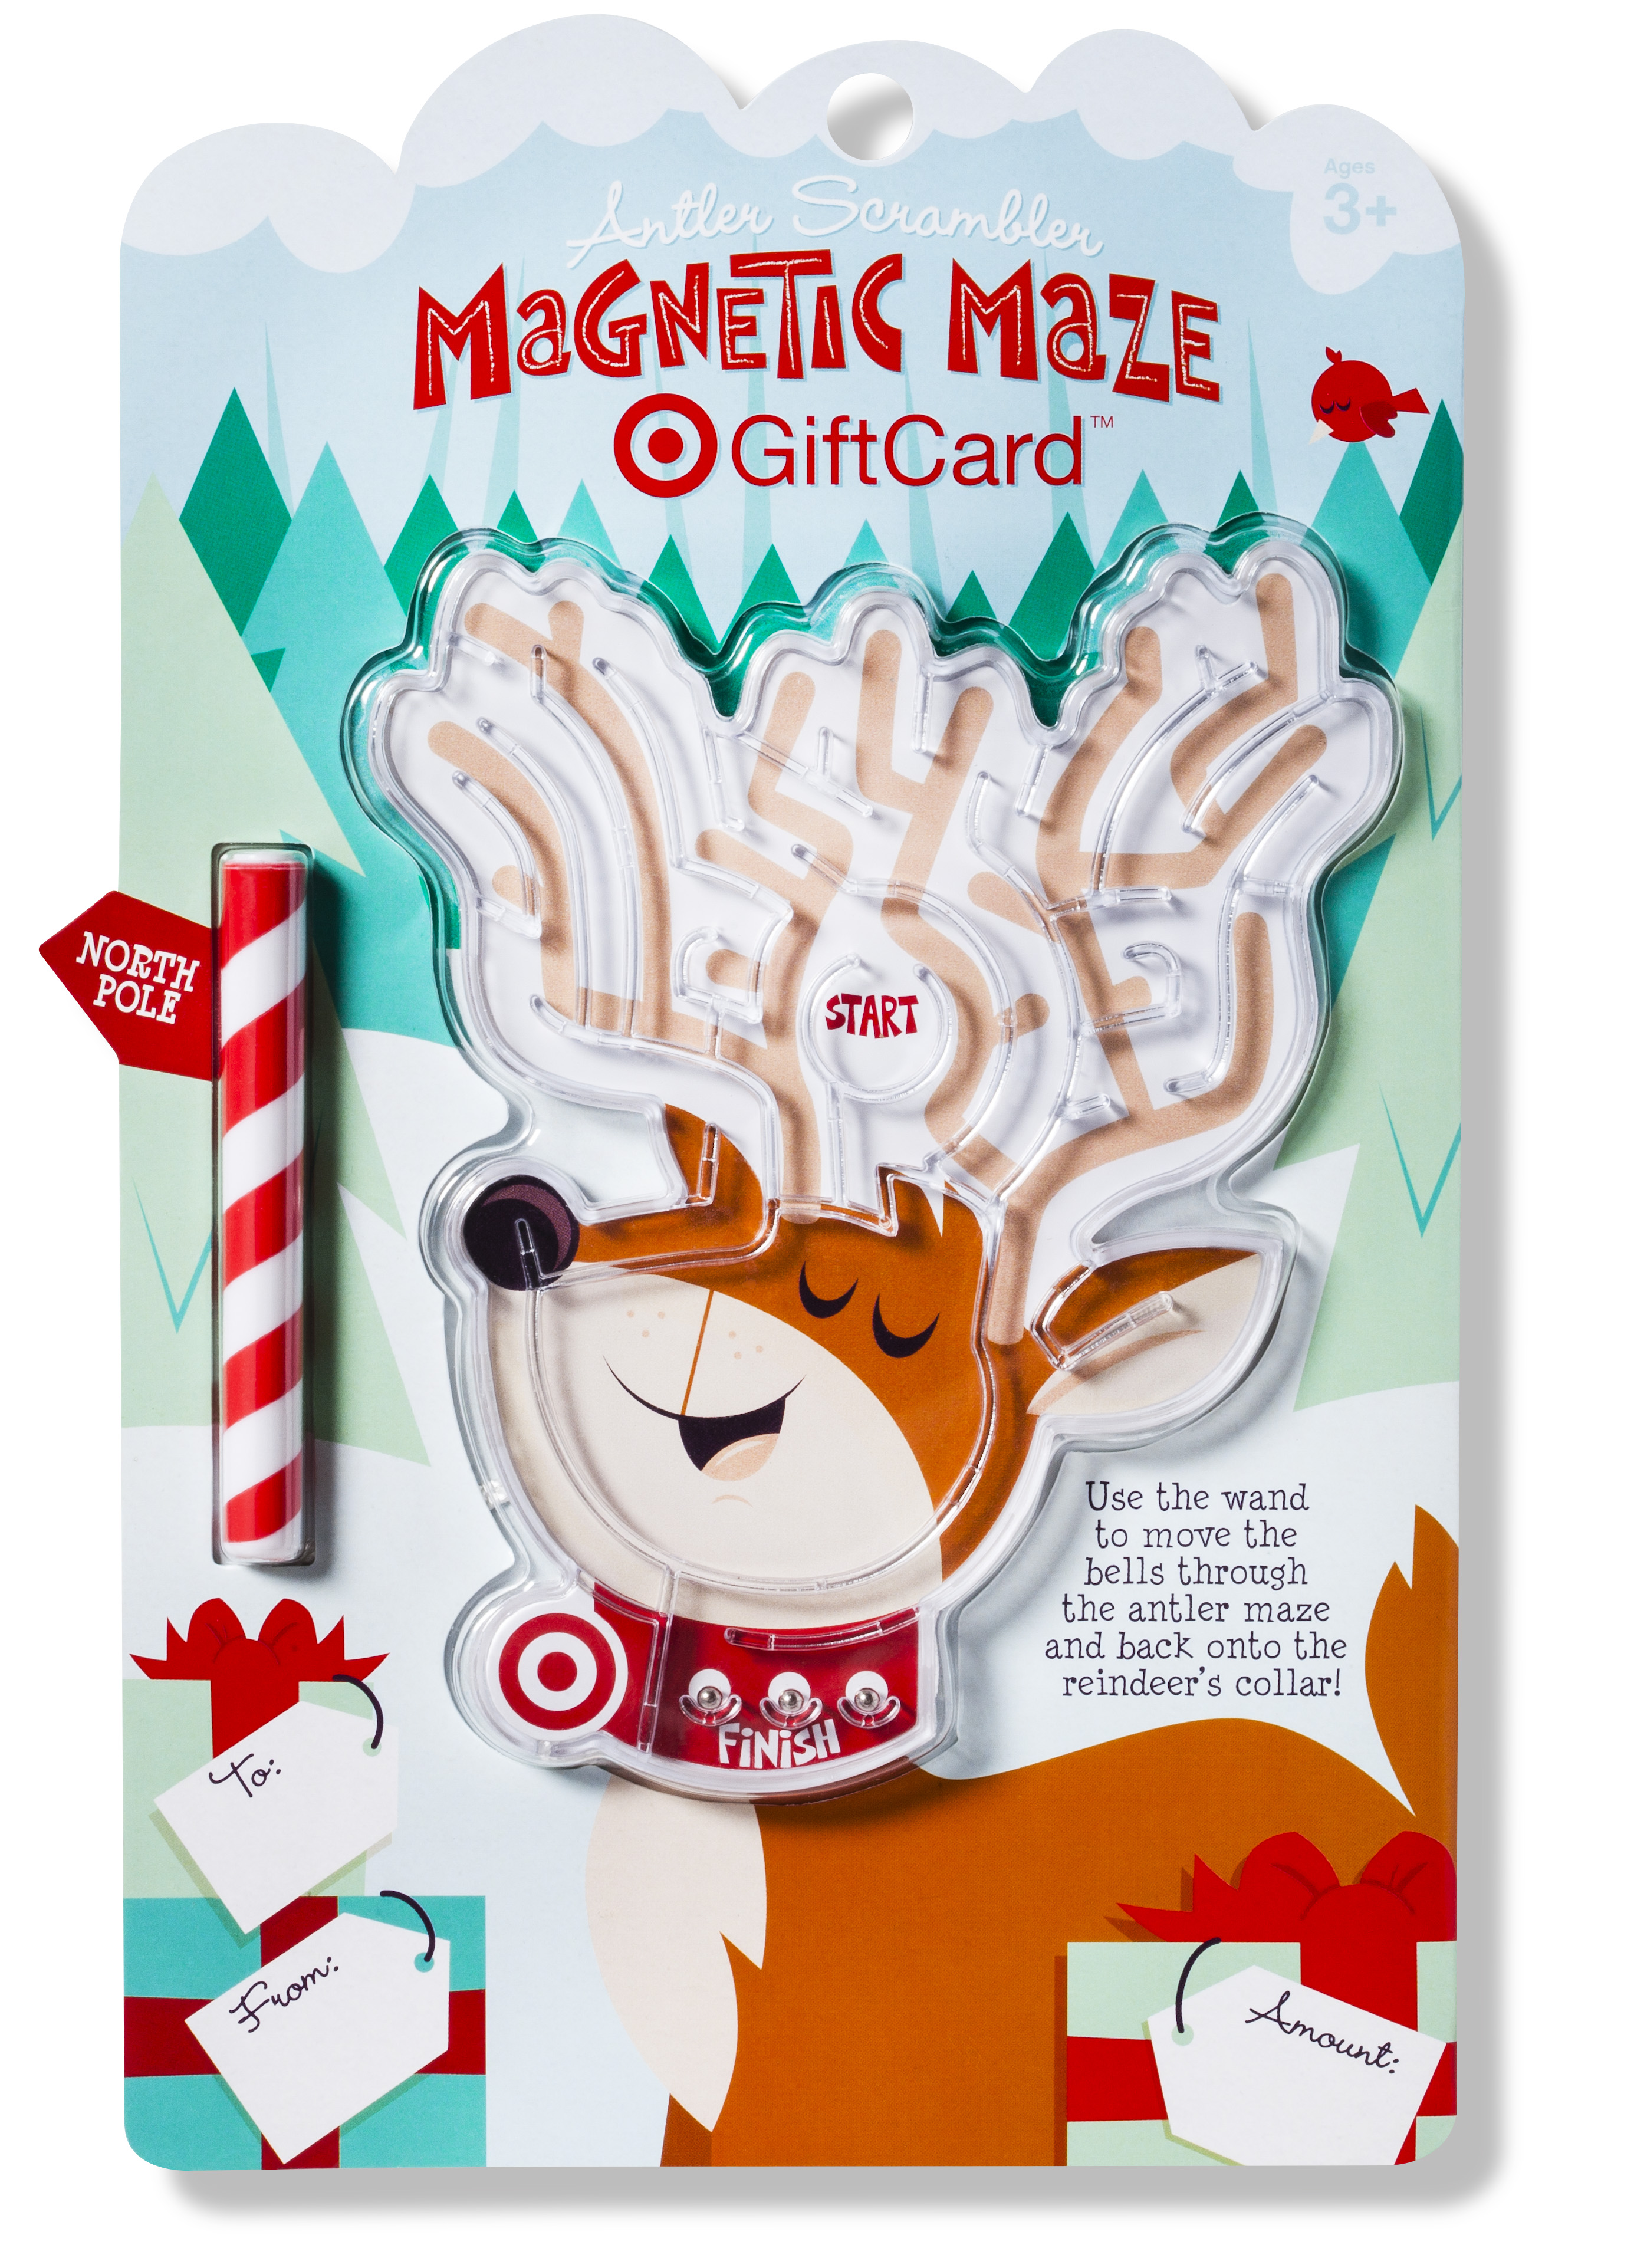 Target to Wow Guests With New Holiday Gift Cards